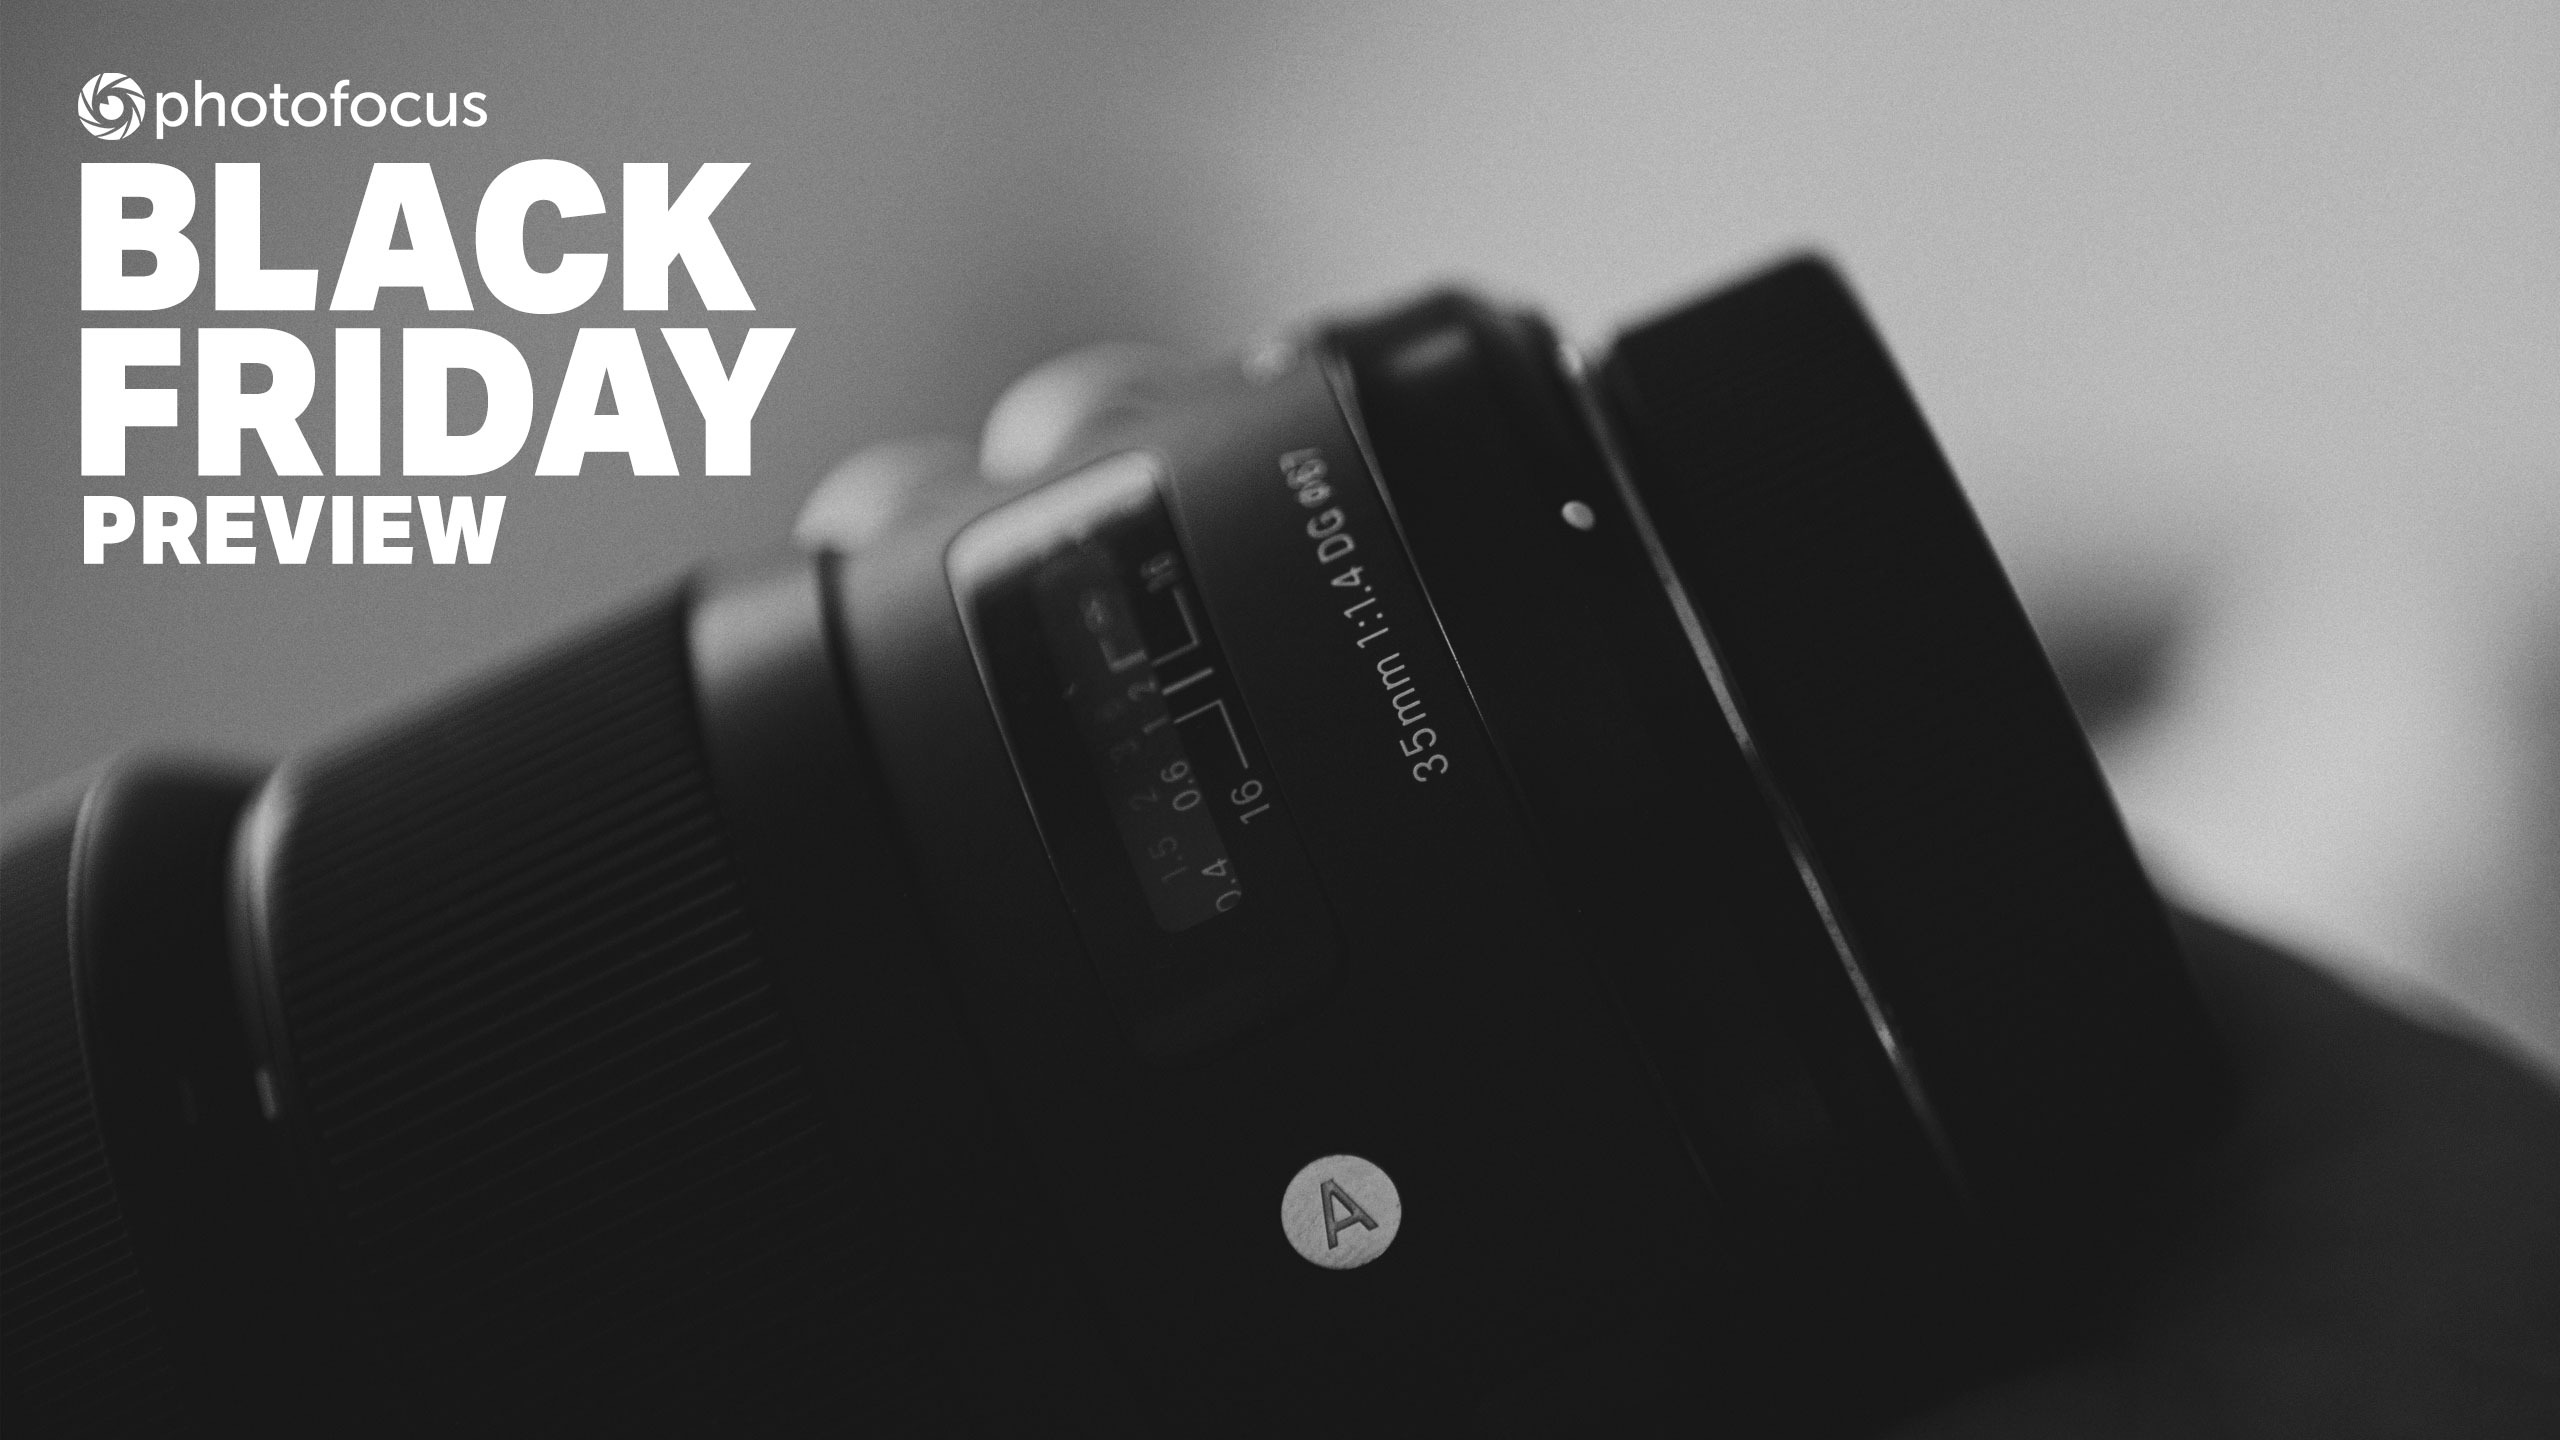 Get up to $400 off Sigma lenses with early Black Friday deals